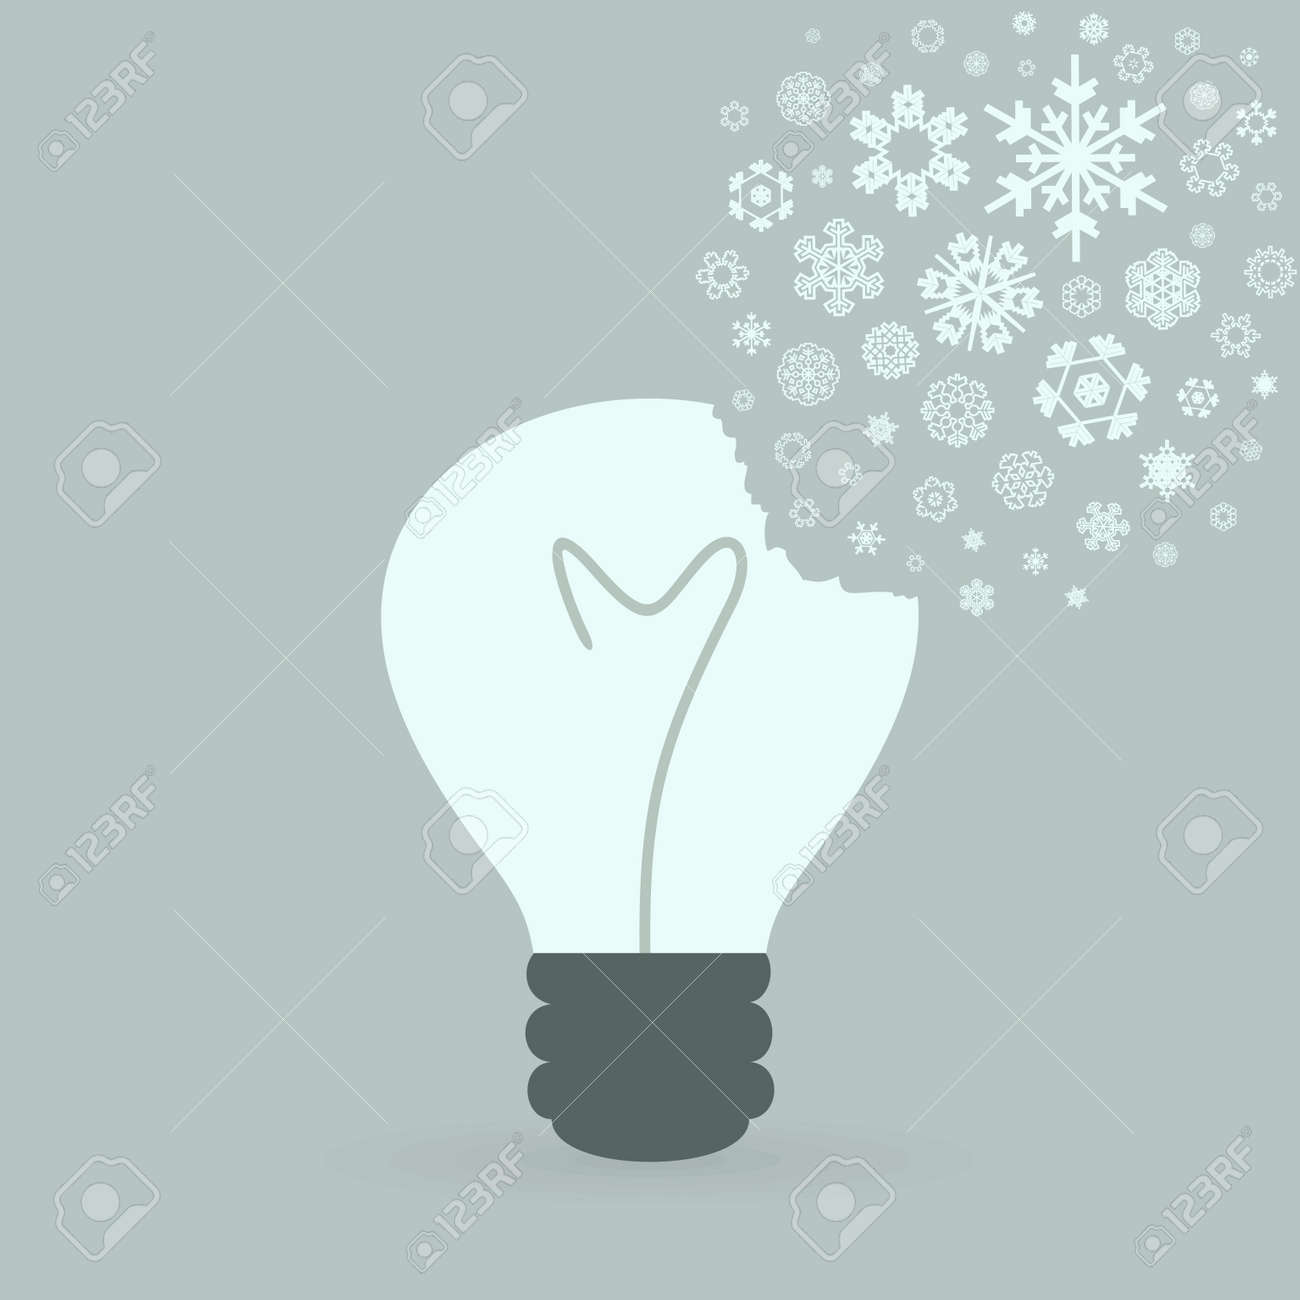 From a bulb snowflakes fly Stock Vector - 18017247